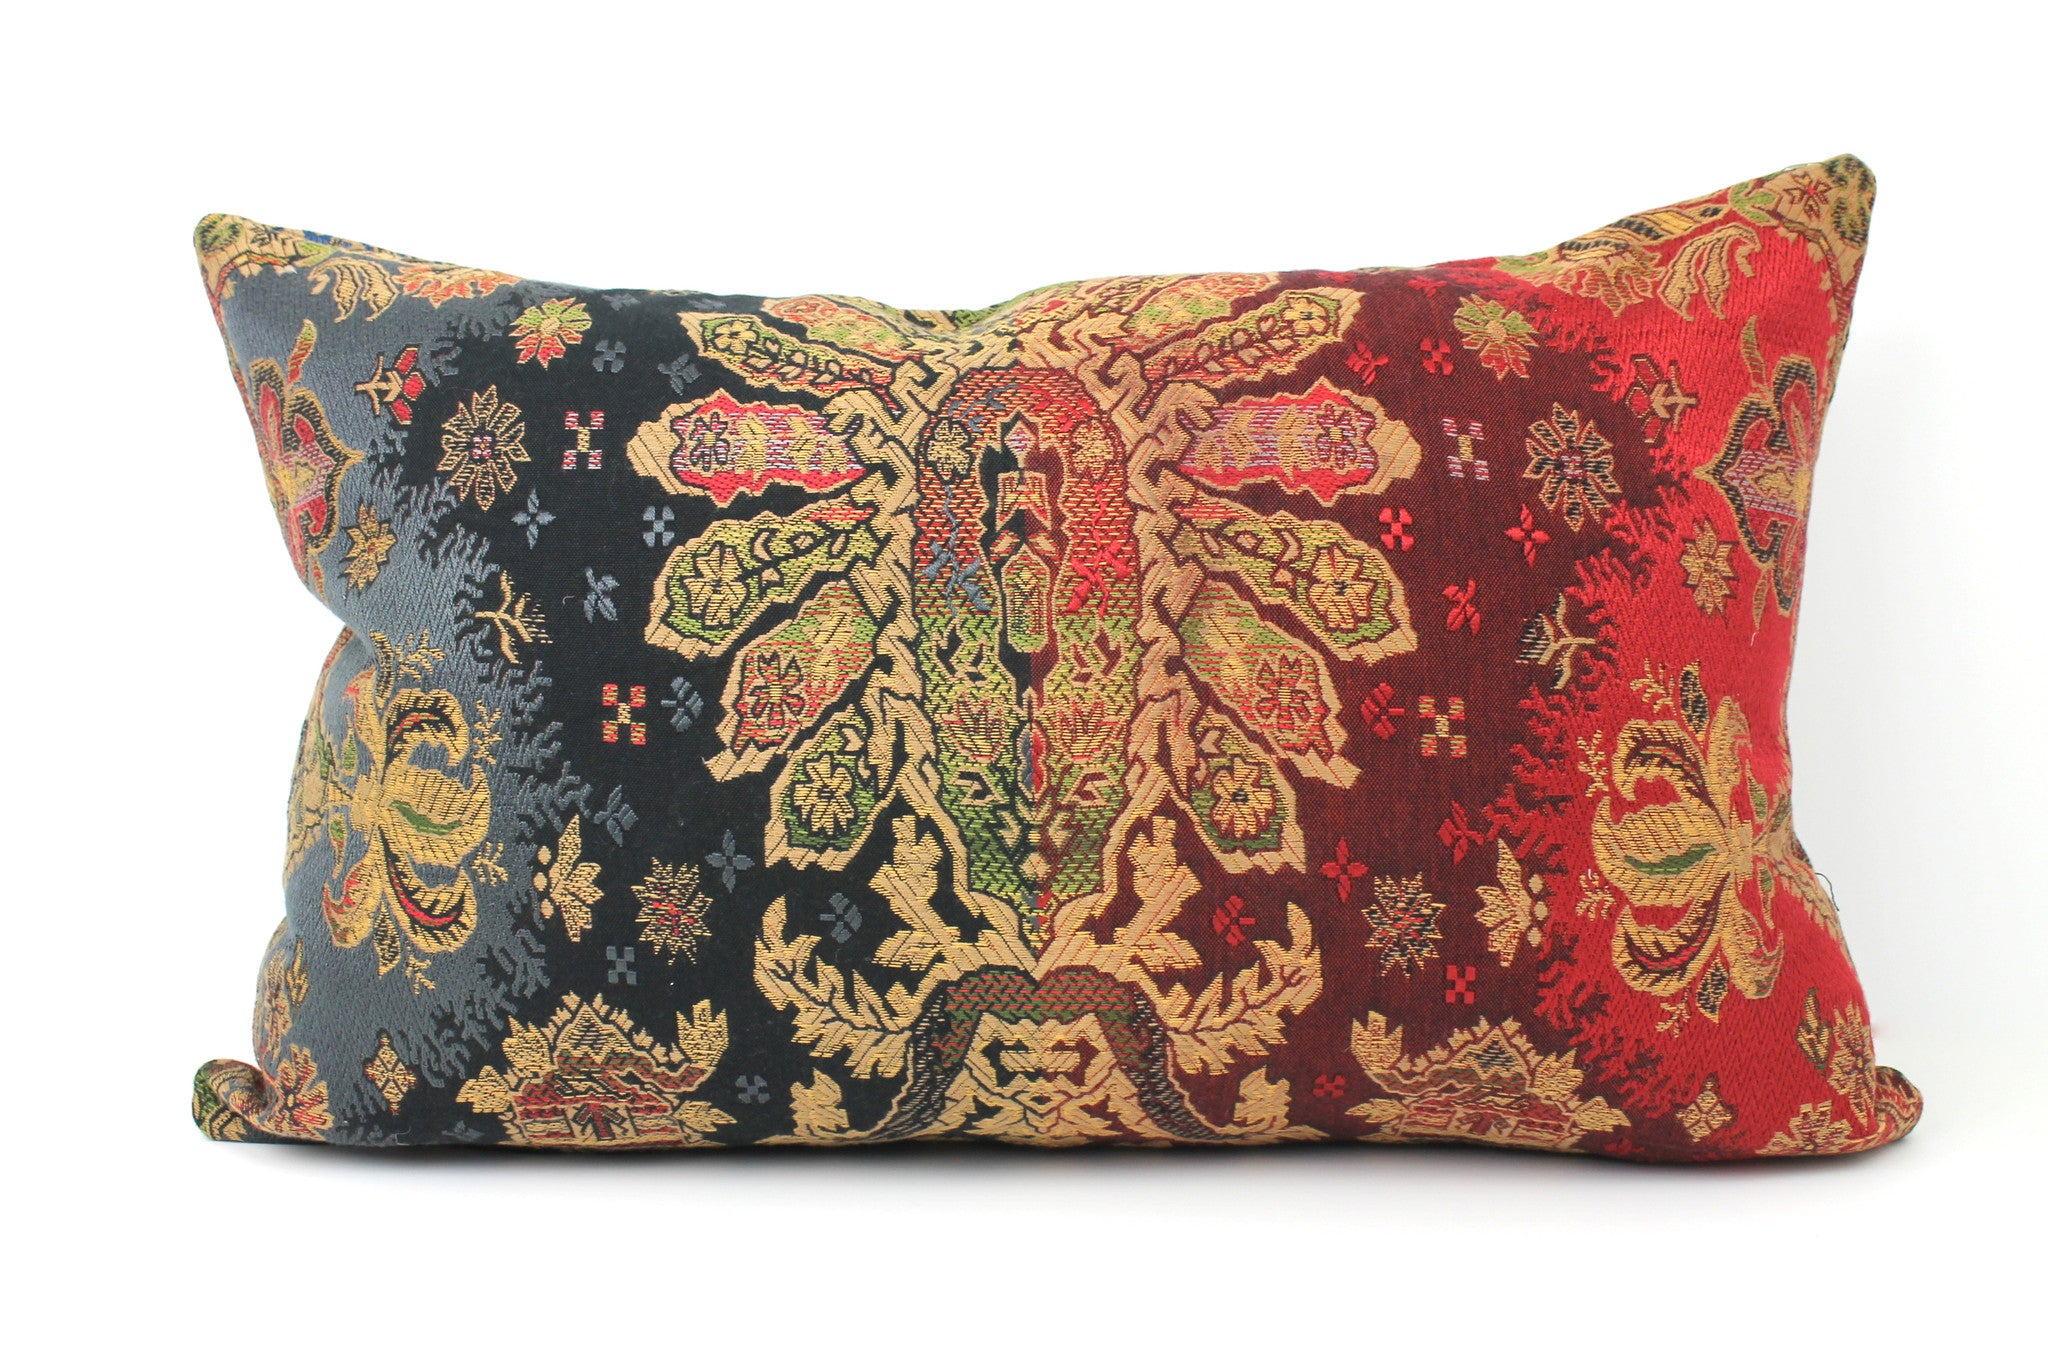 Pierre Frey Bolchoi Pillow France